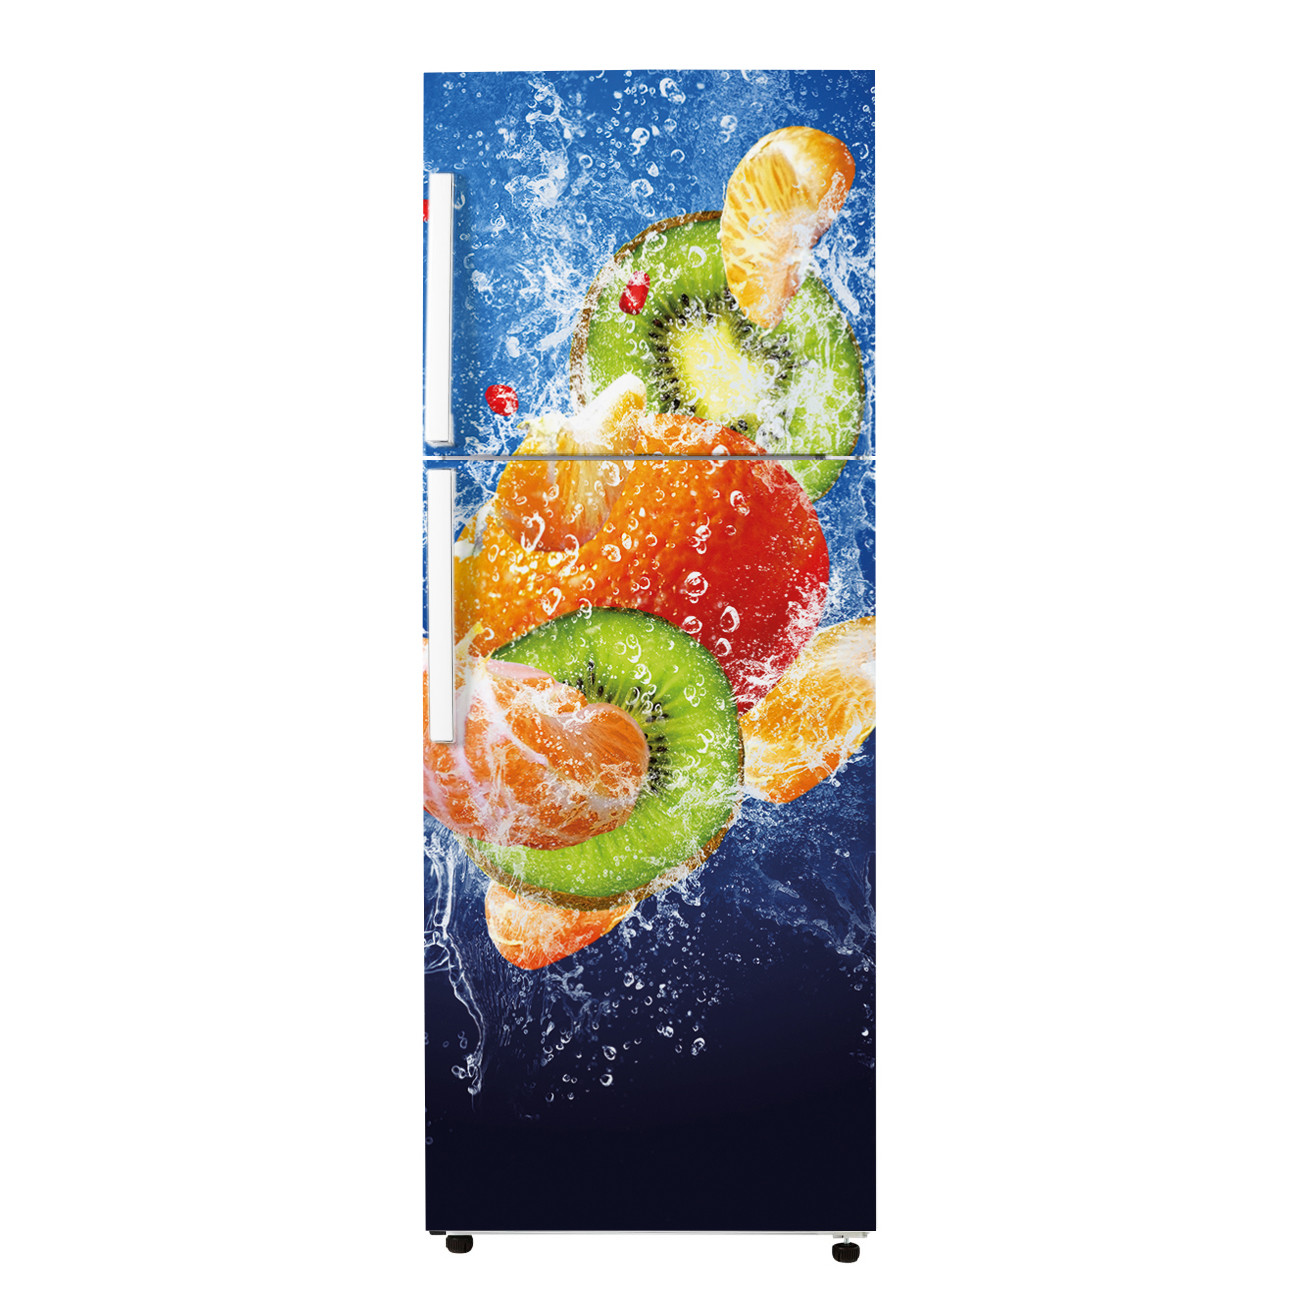 stickers frigo fruits 4 des prix 50 moins cher qu 39 en magasin. Black Bedroom Furniture Sets. Home Design Ideas